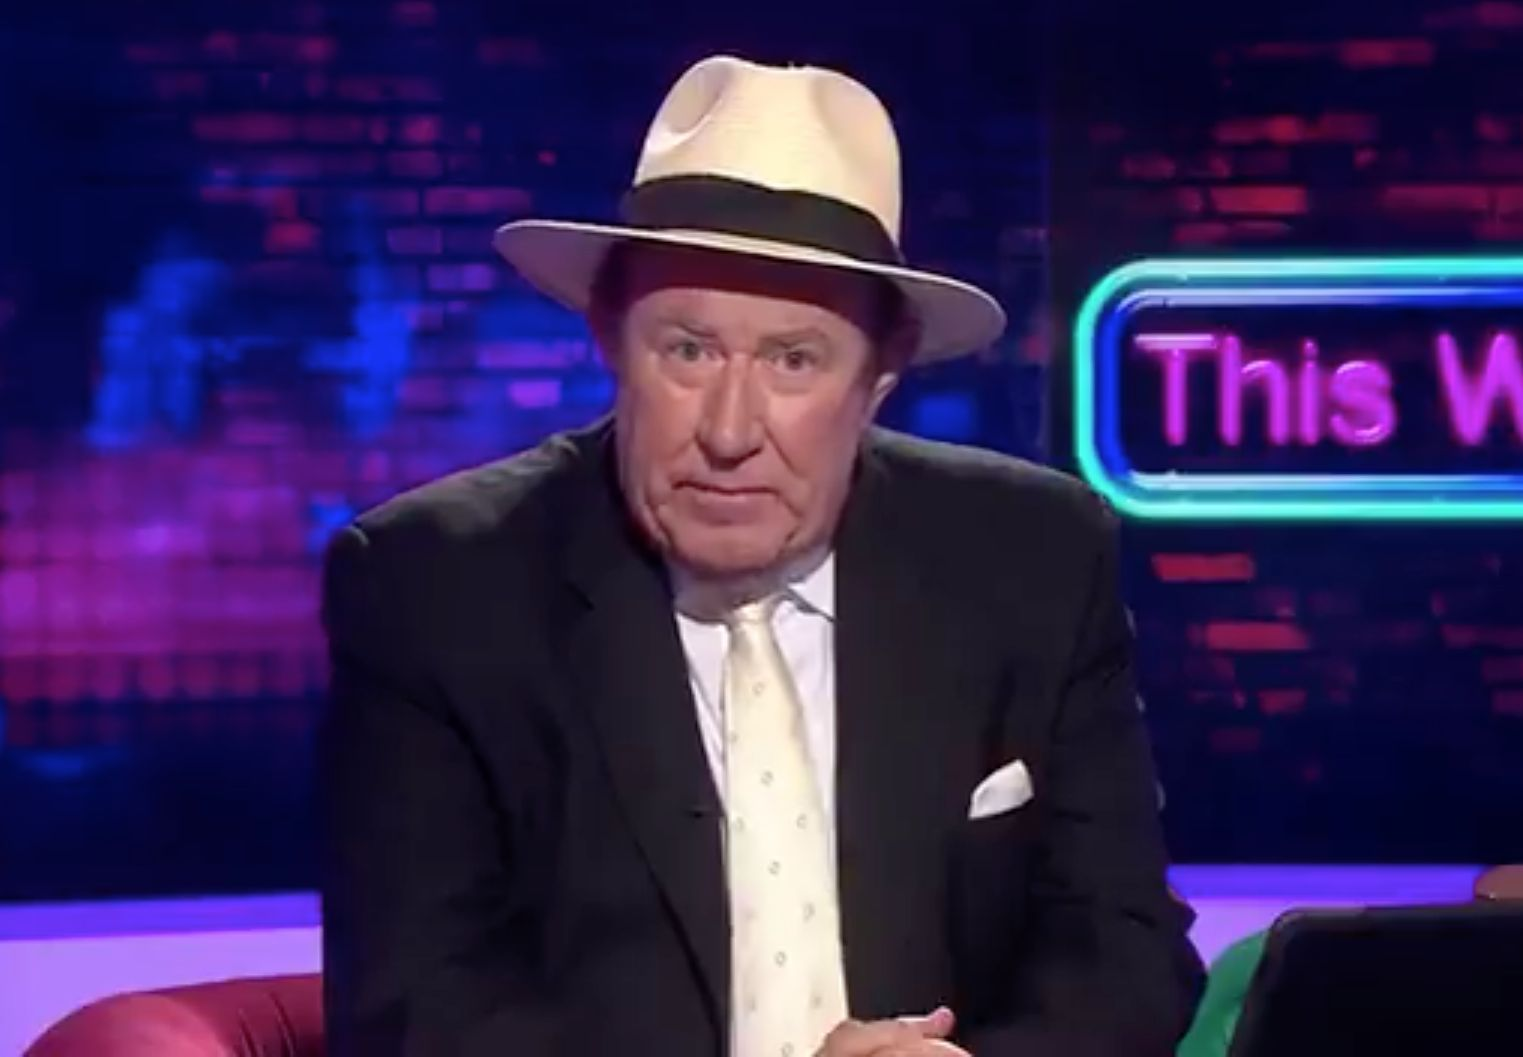 Andrew Neil Delivers Searing Monologue Mocking BBC Pay